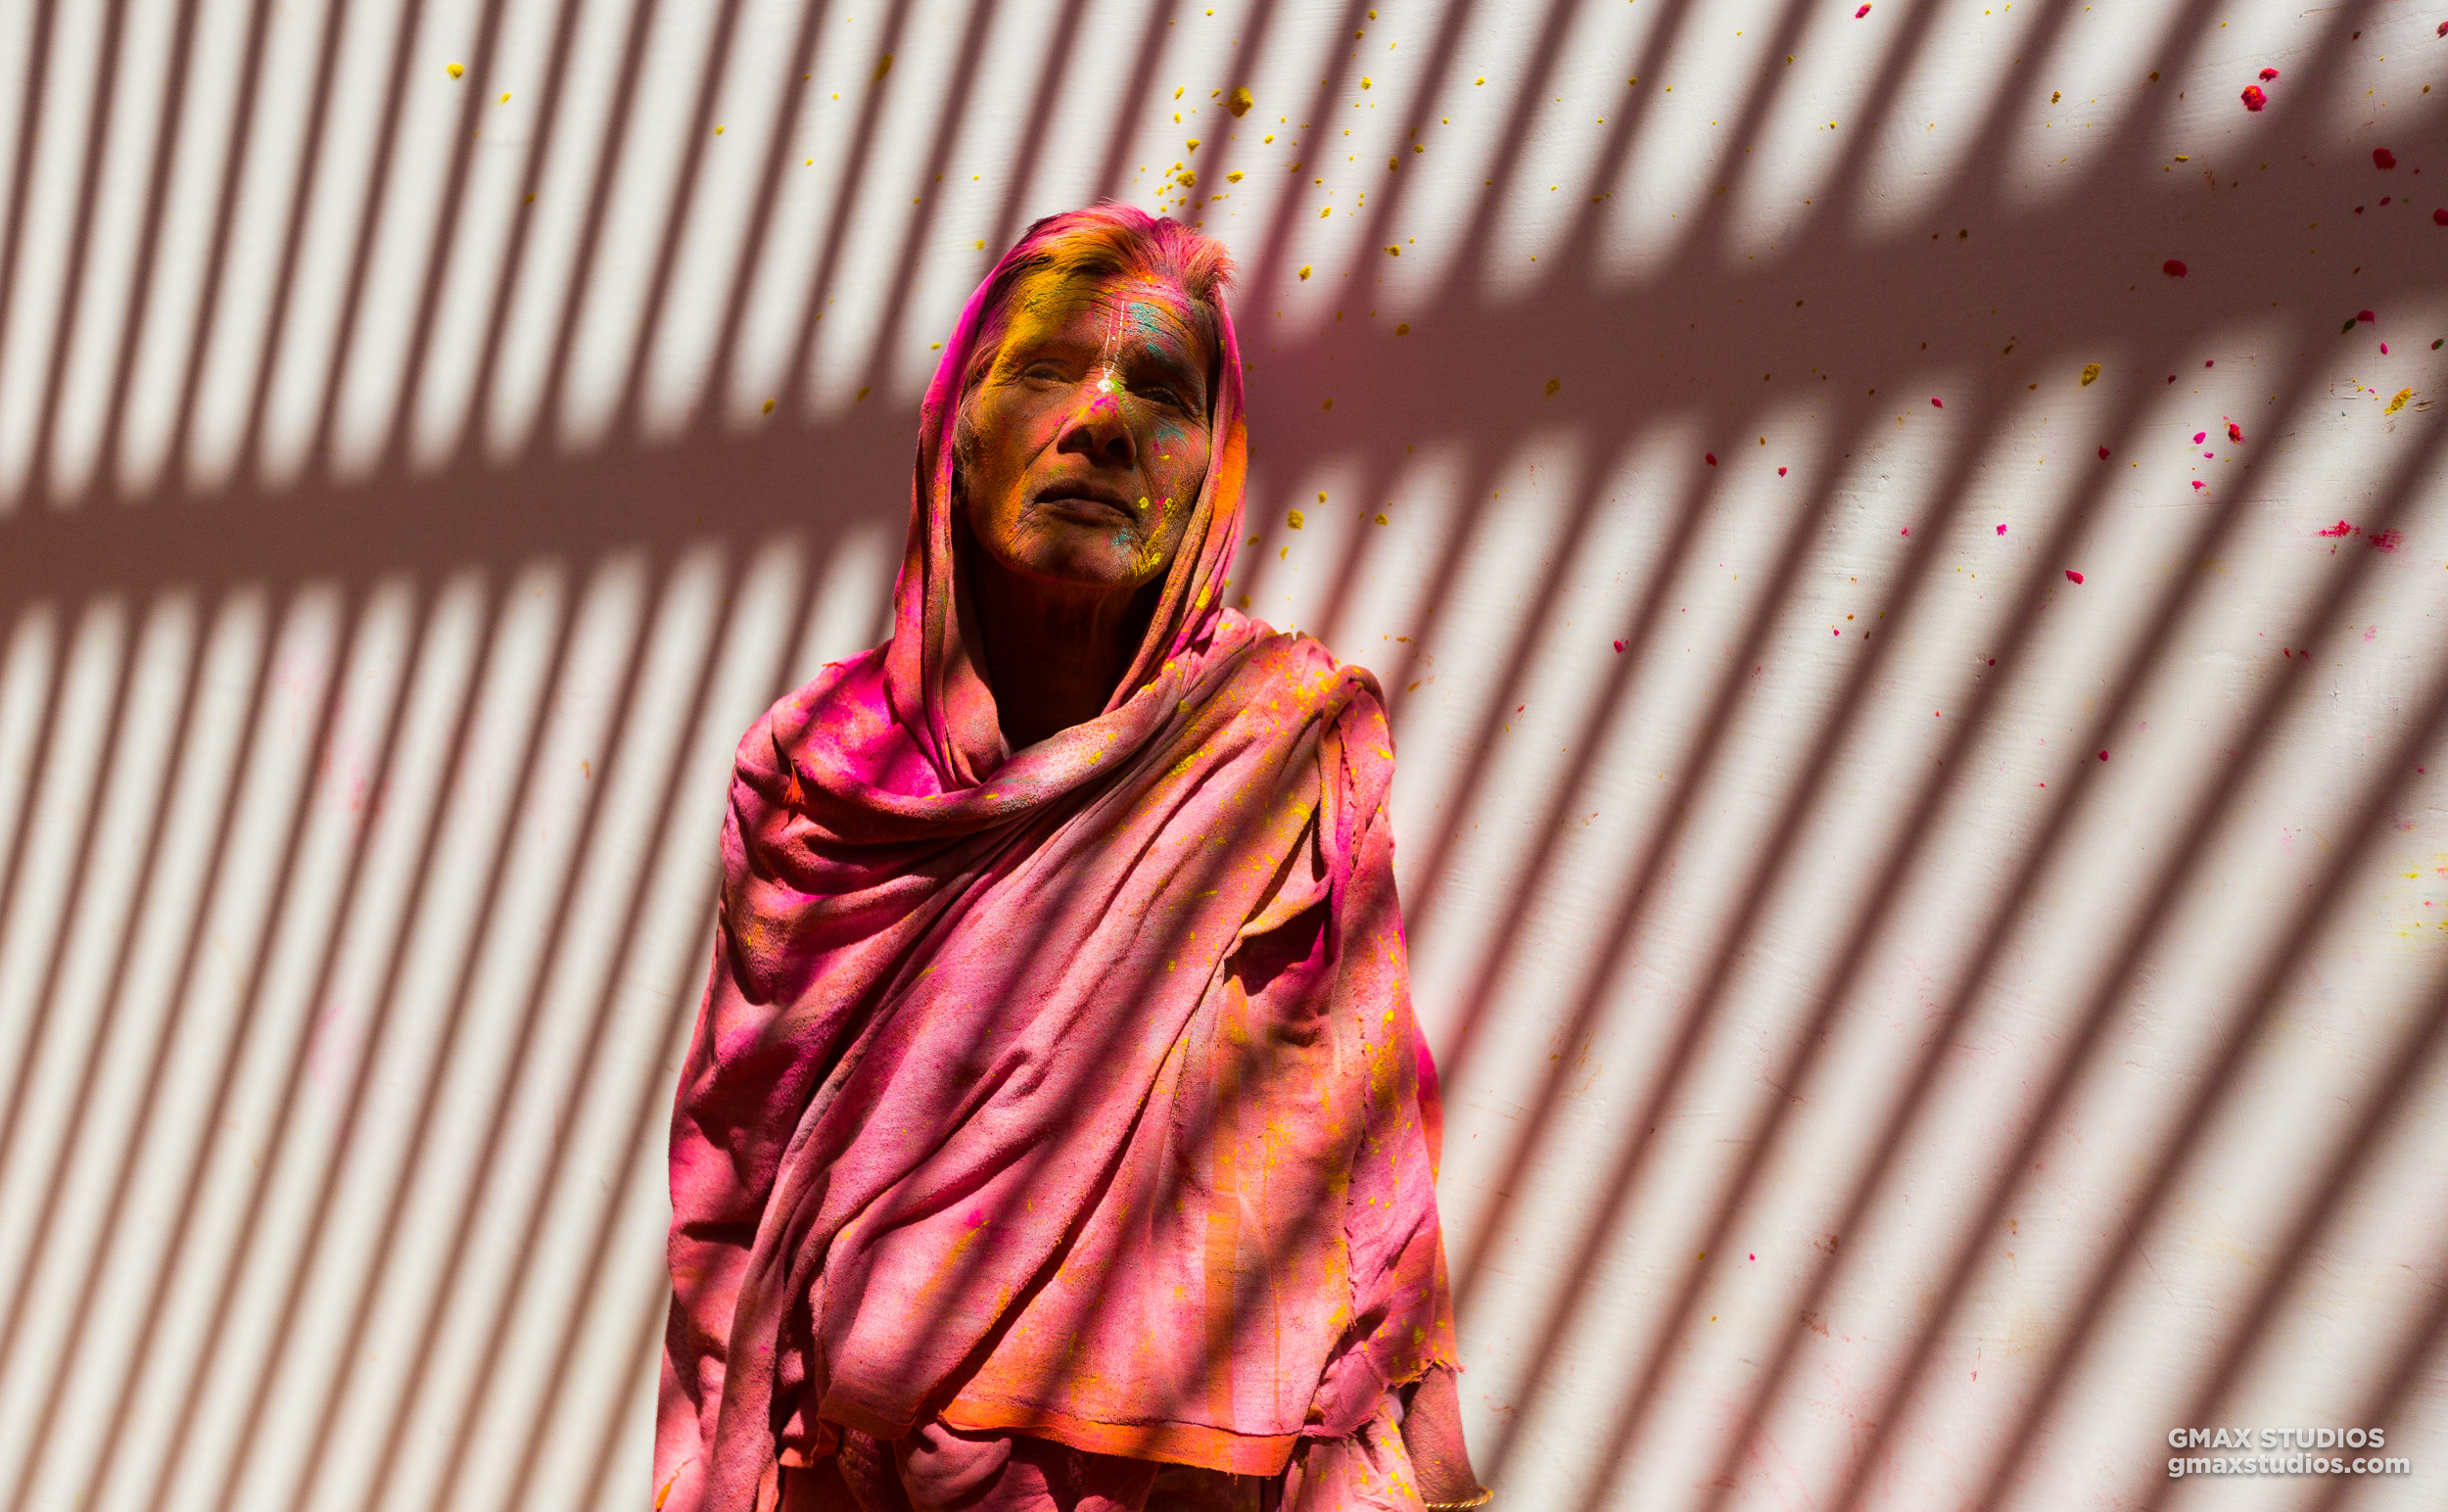 We asked the lady in the photograph if she would let us take a picture of her. She didn't respond with a yes or no but simply stood still. The photograph is an indicator of the love Vrindavan widows have for humanity and what humanity has put them through.The striped pattern on the wall resembles a prison both literal and psychological, that the widows have inhabited for centuries.